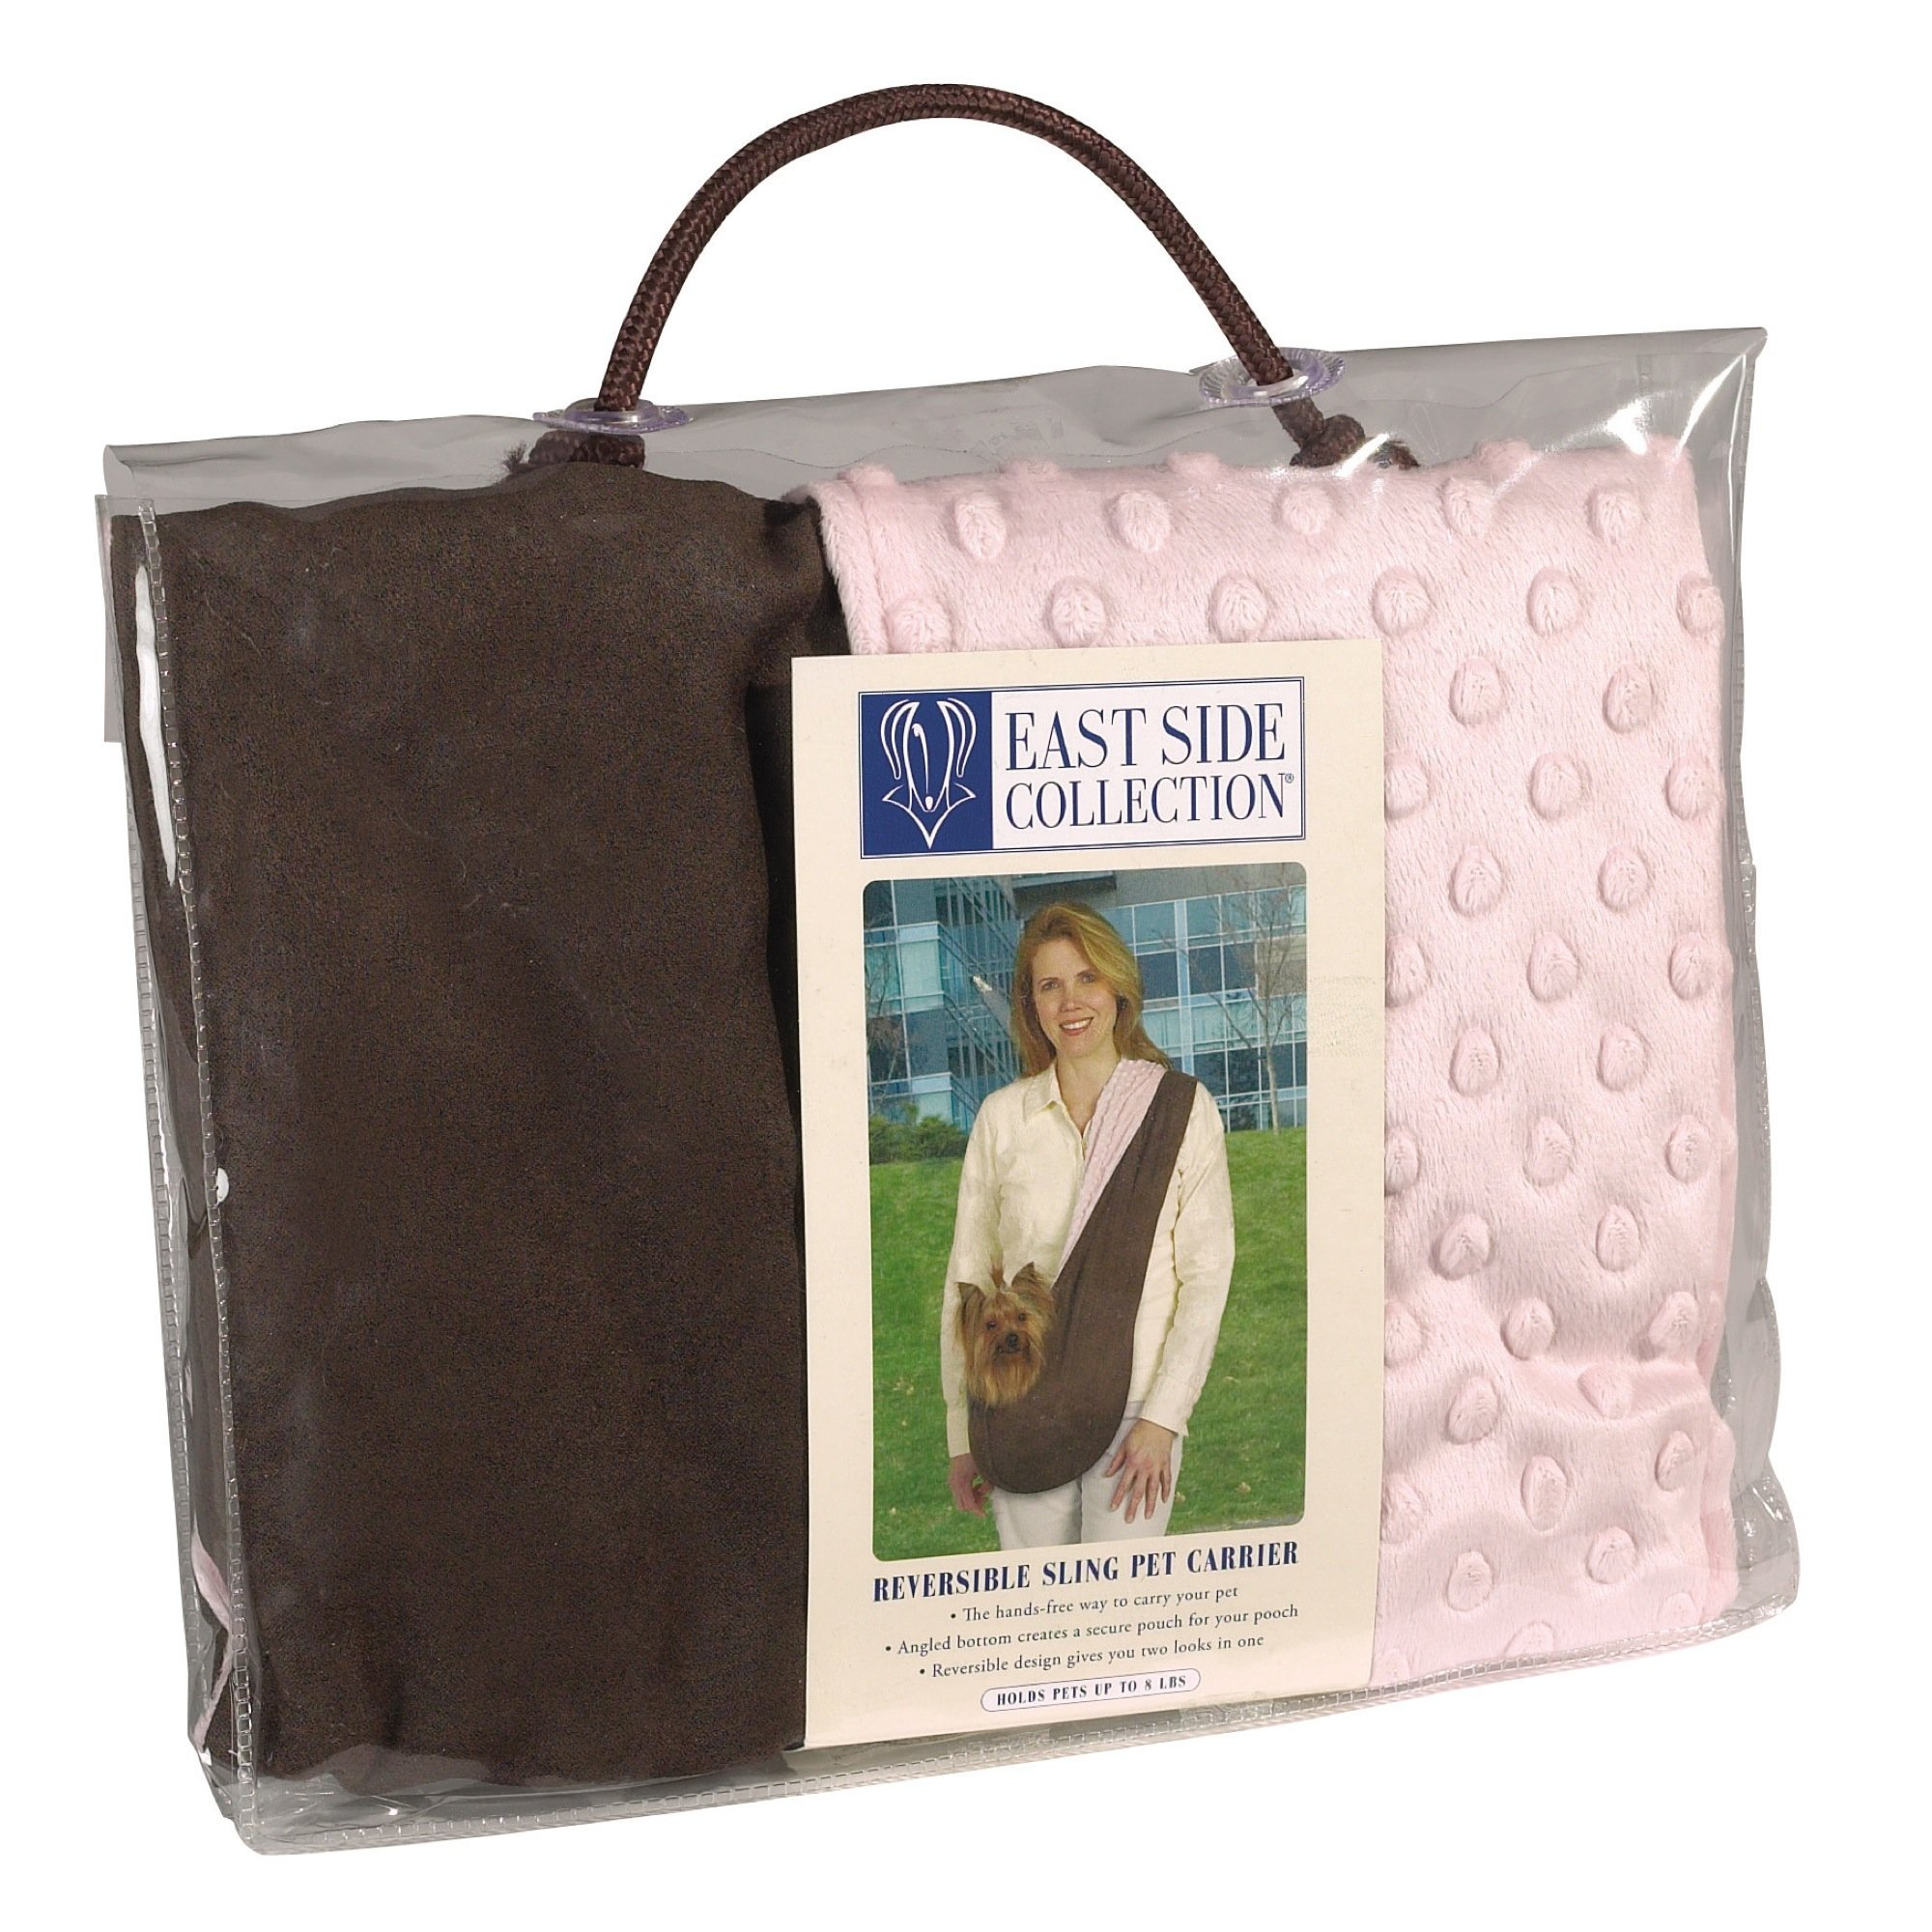 East Side Collection Reversible Sling Pet Carriers - Versatile Polyester Over-the-Shoulder Carriers for Small Dogs, Brown/Pink by East Side Collection